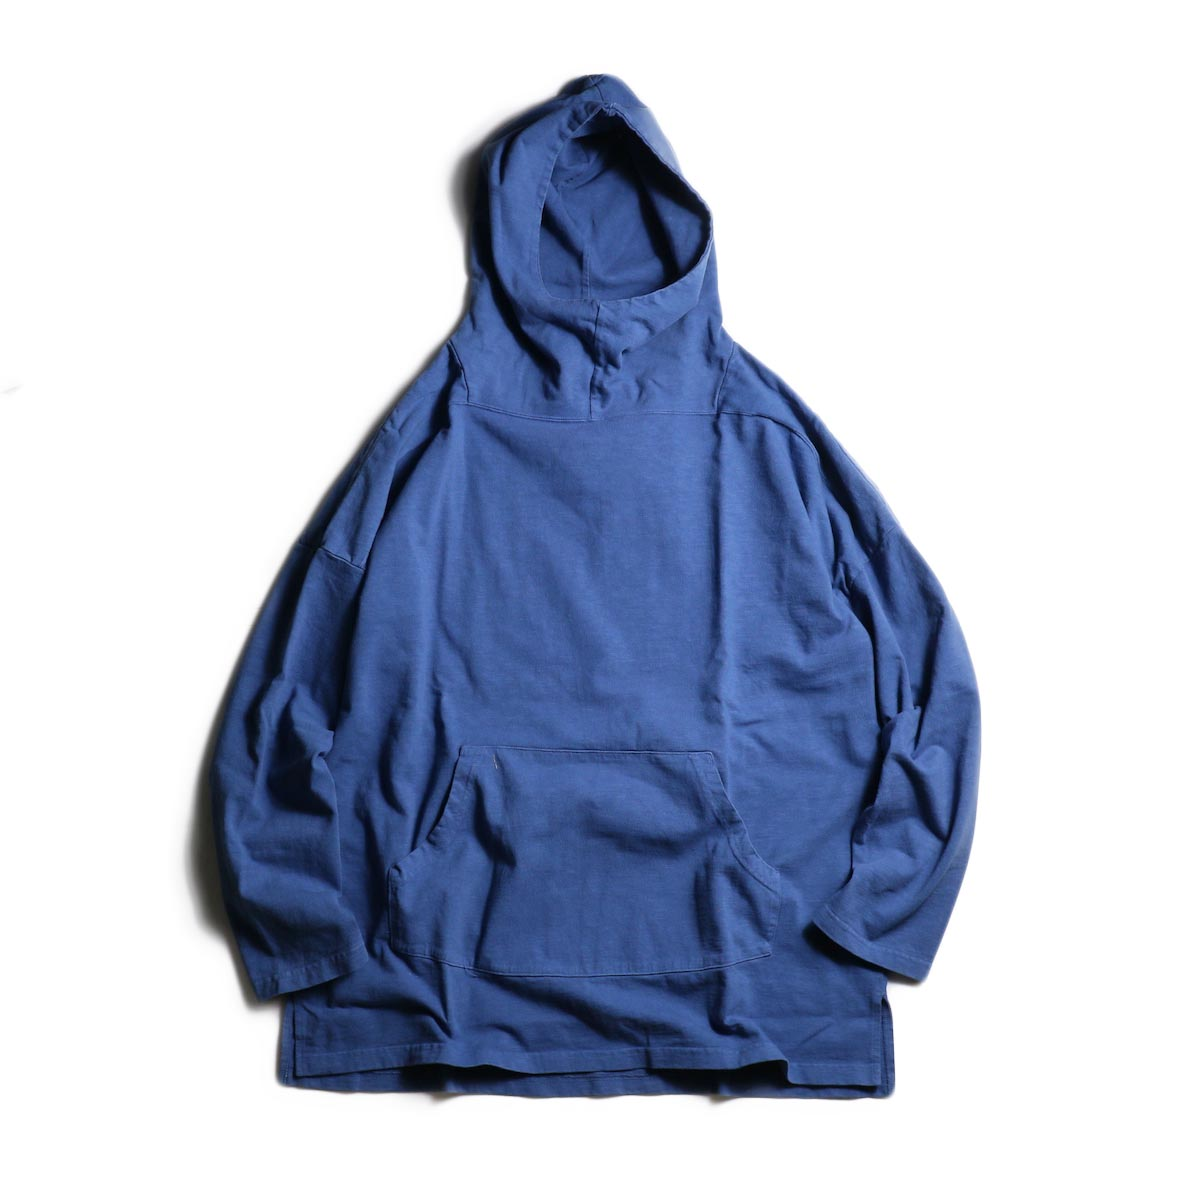 nonnative / TROOPER HOODIE COTTON SLAB JERSEY OVERDYED (Blue)